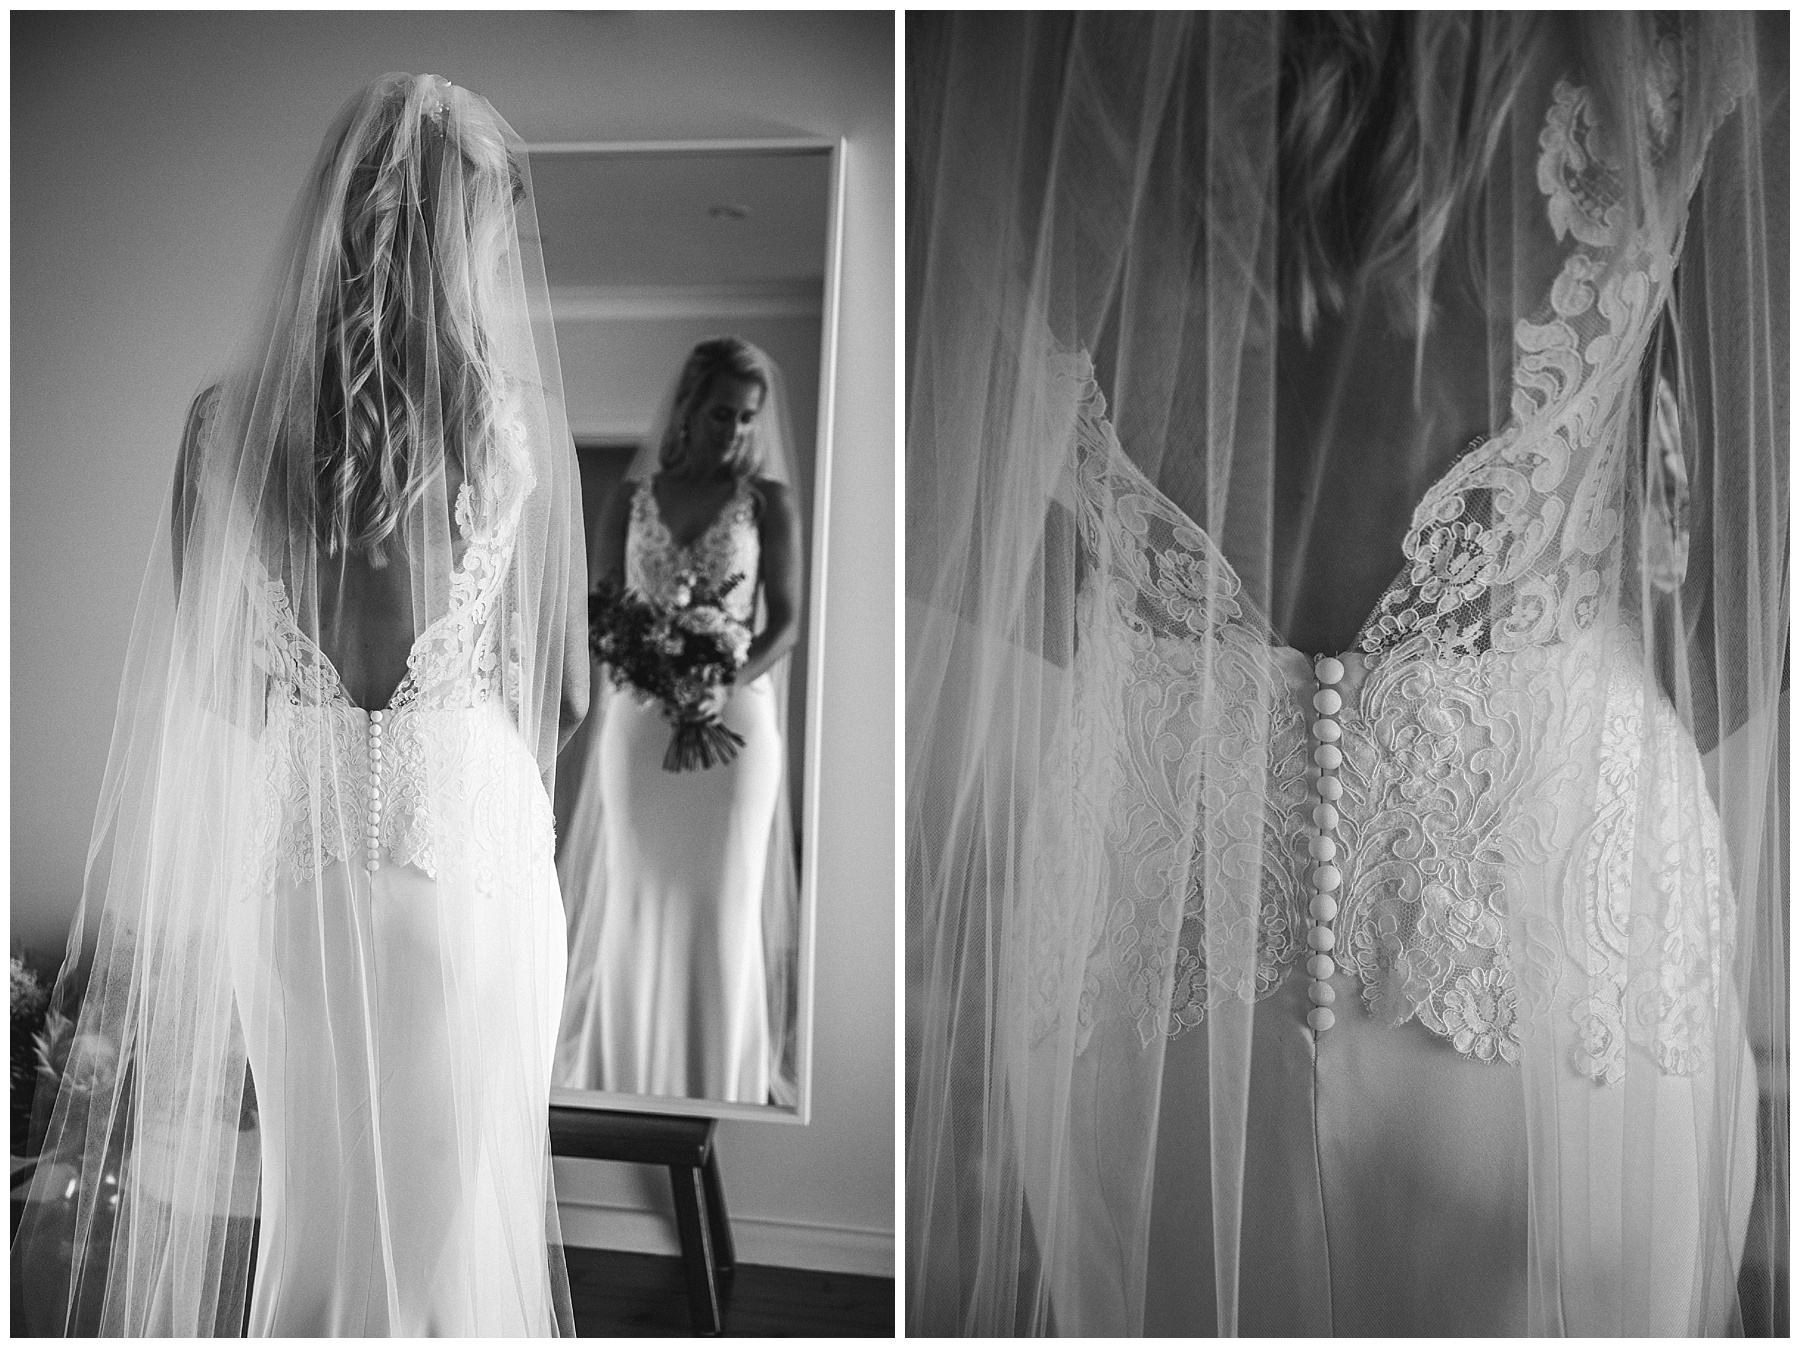 Veil hanging over bride's back